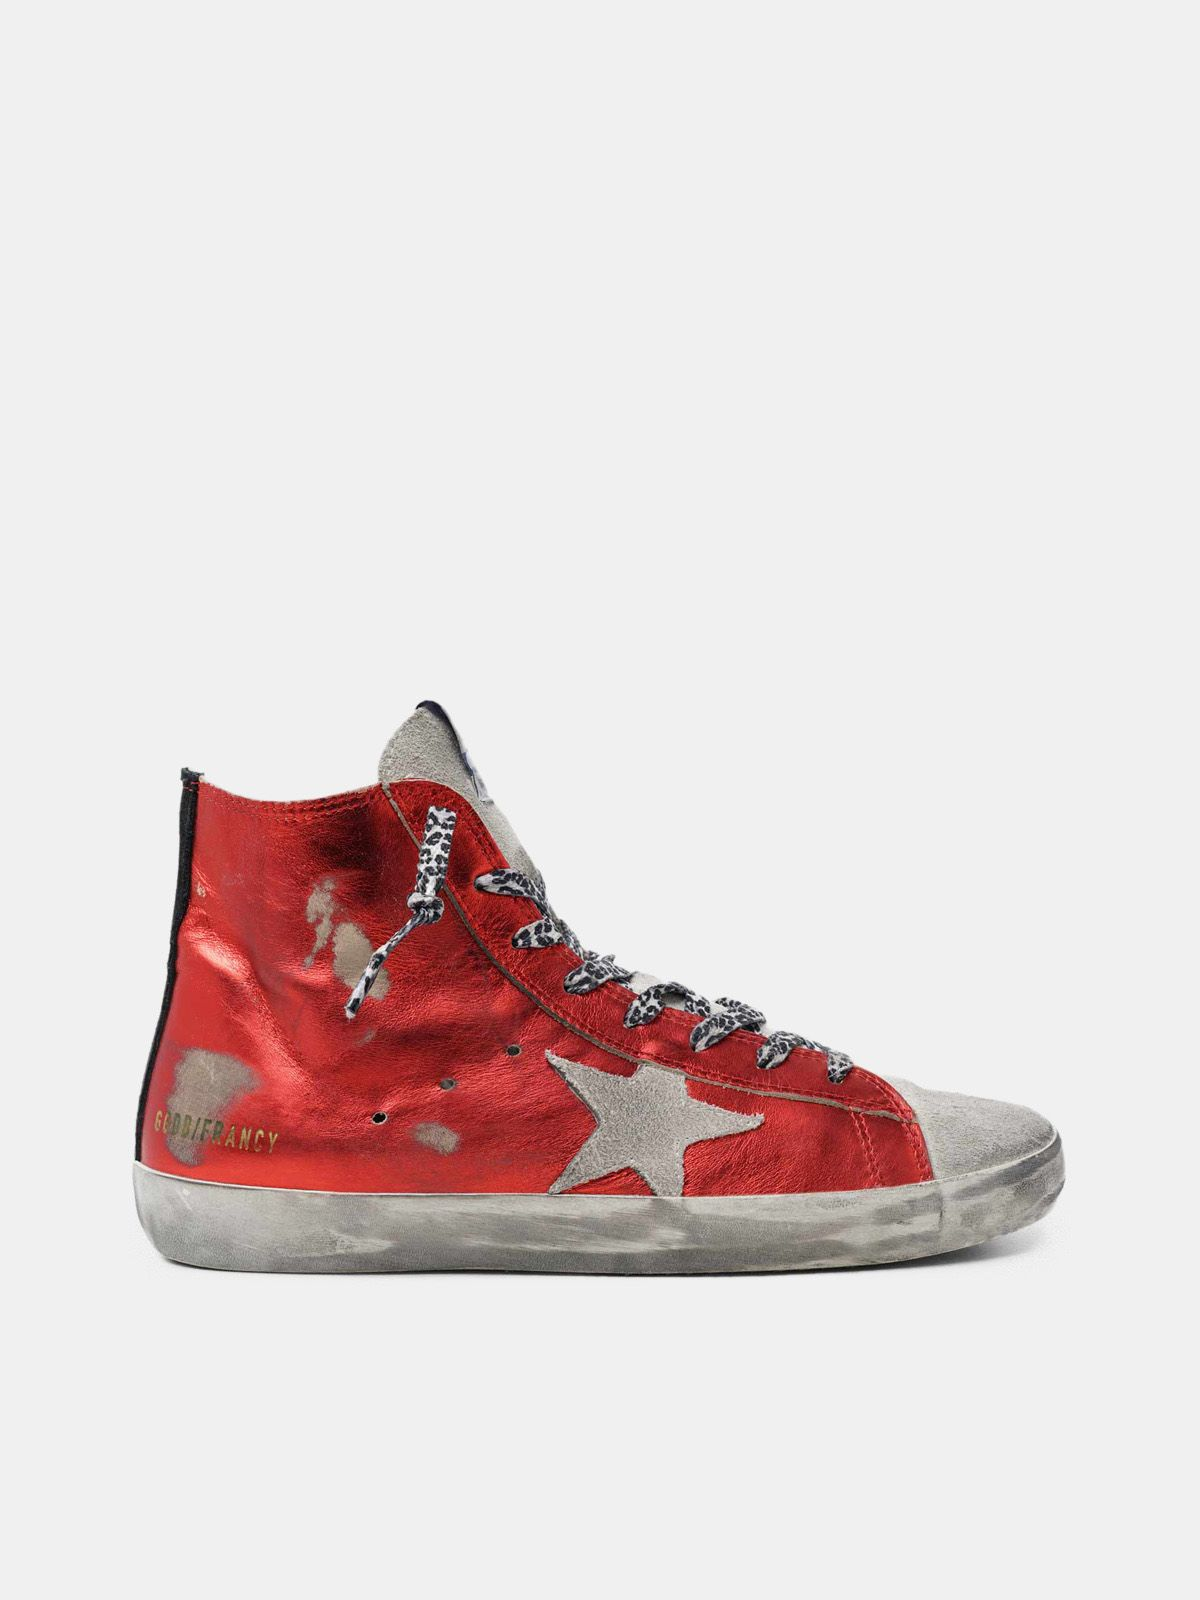 Golden Goose - Francy sneakers in red laminated leather with leopard-print laces in